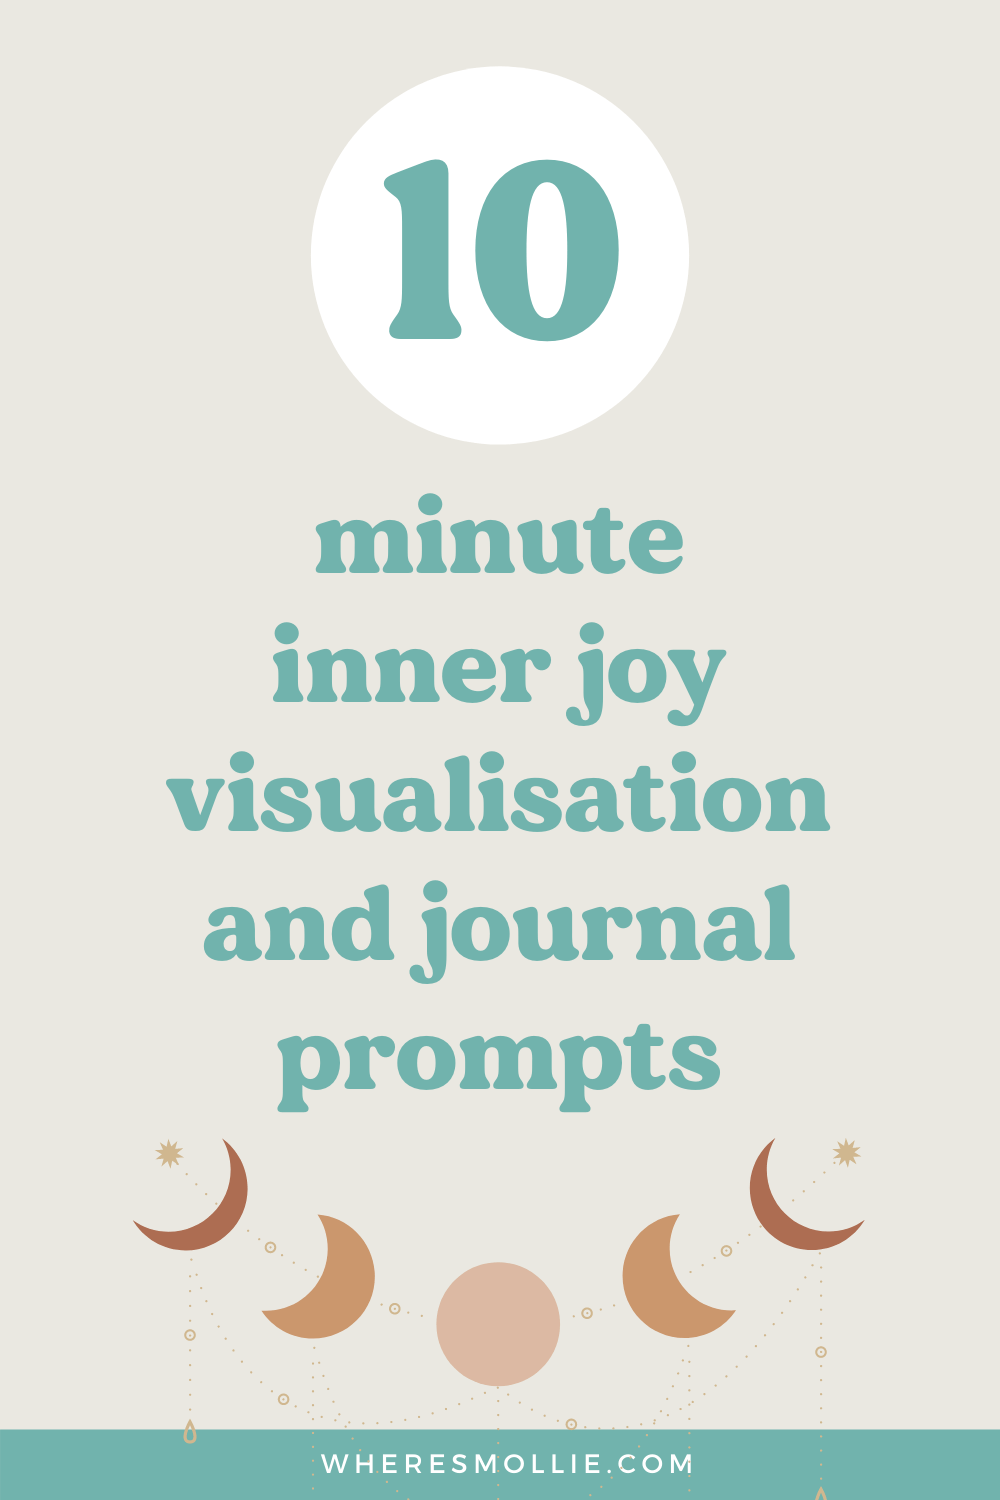 10-minute inner joy visualisation and journal prompts